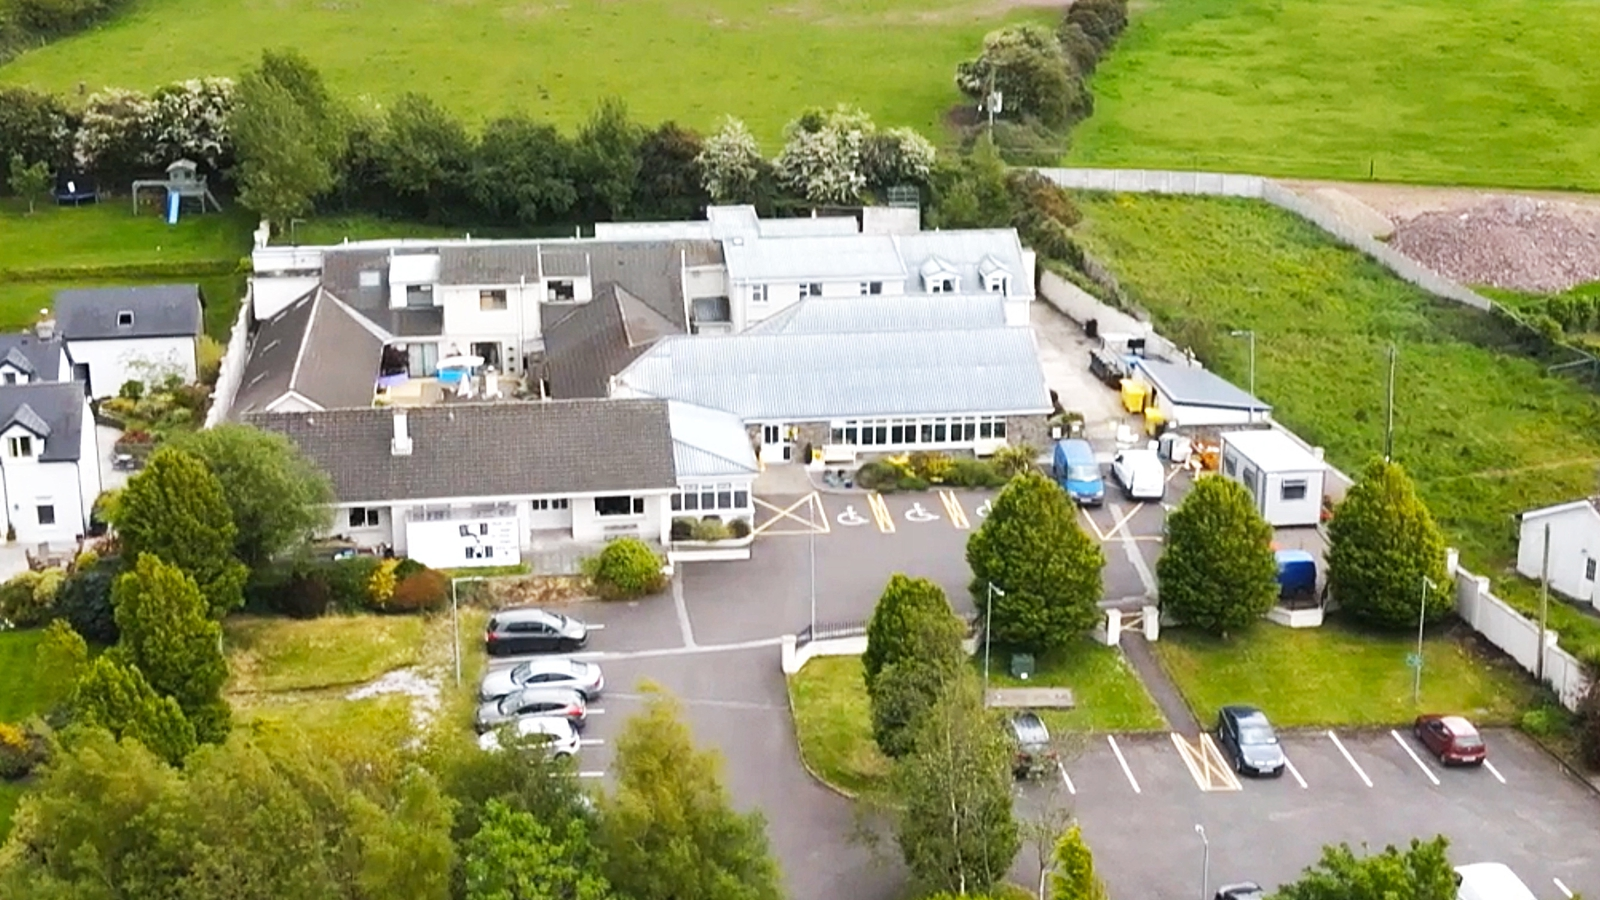 Image - The relatives of 13 people who died in CareChoice Ballynoe are among those looking for answers